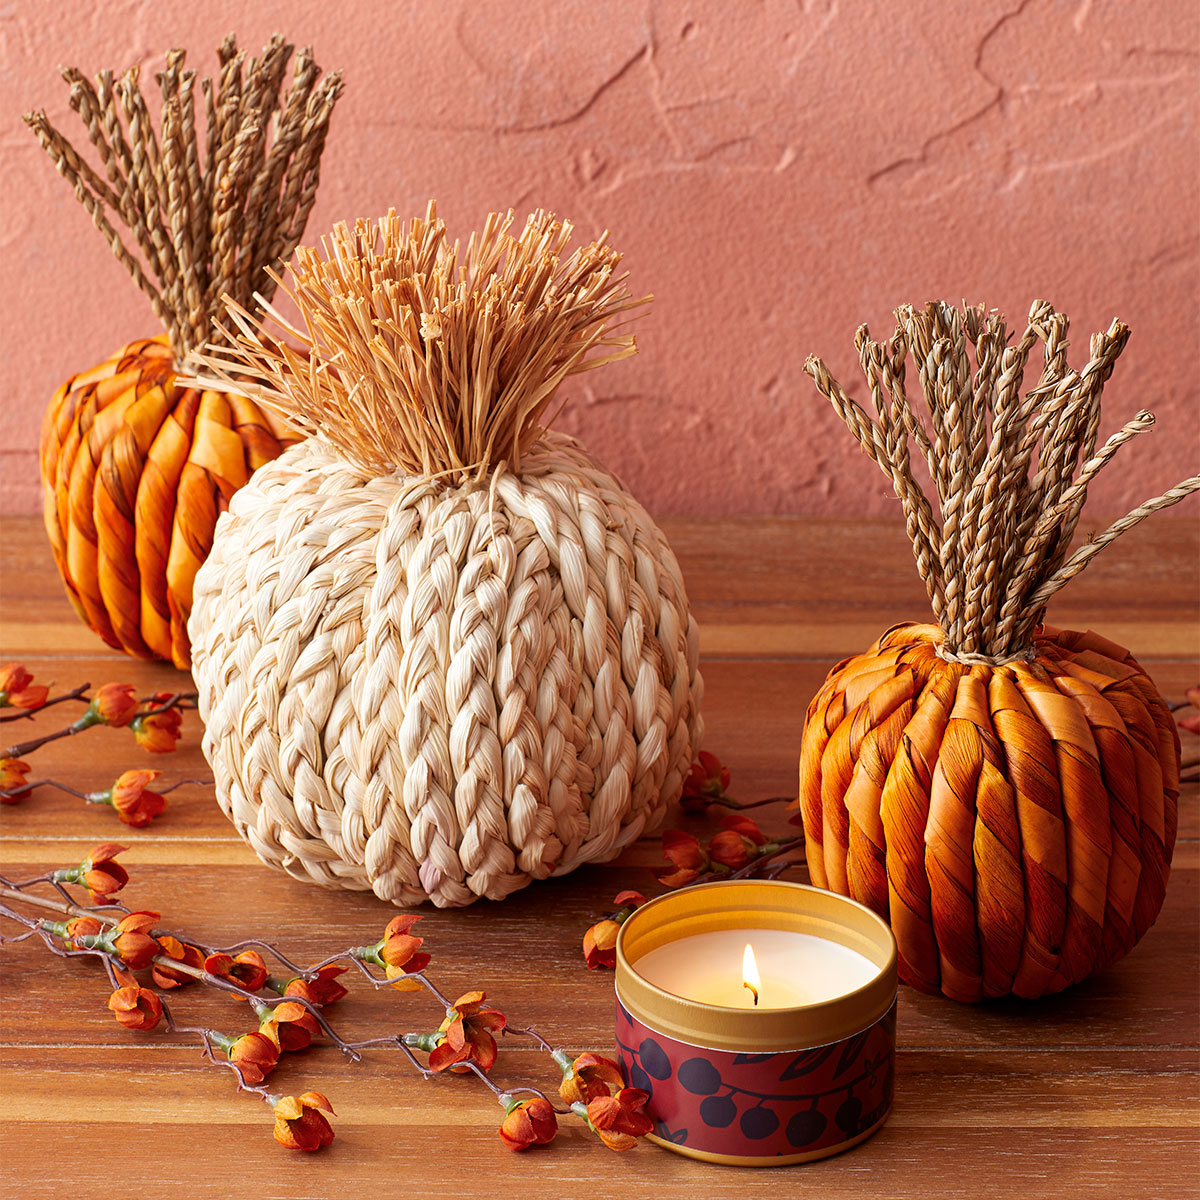 target fall decor pumpkins